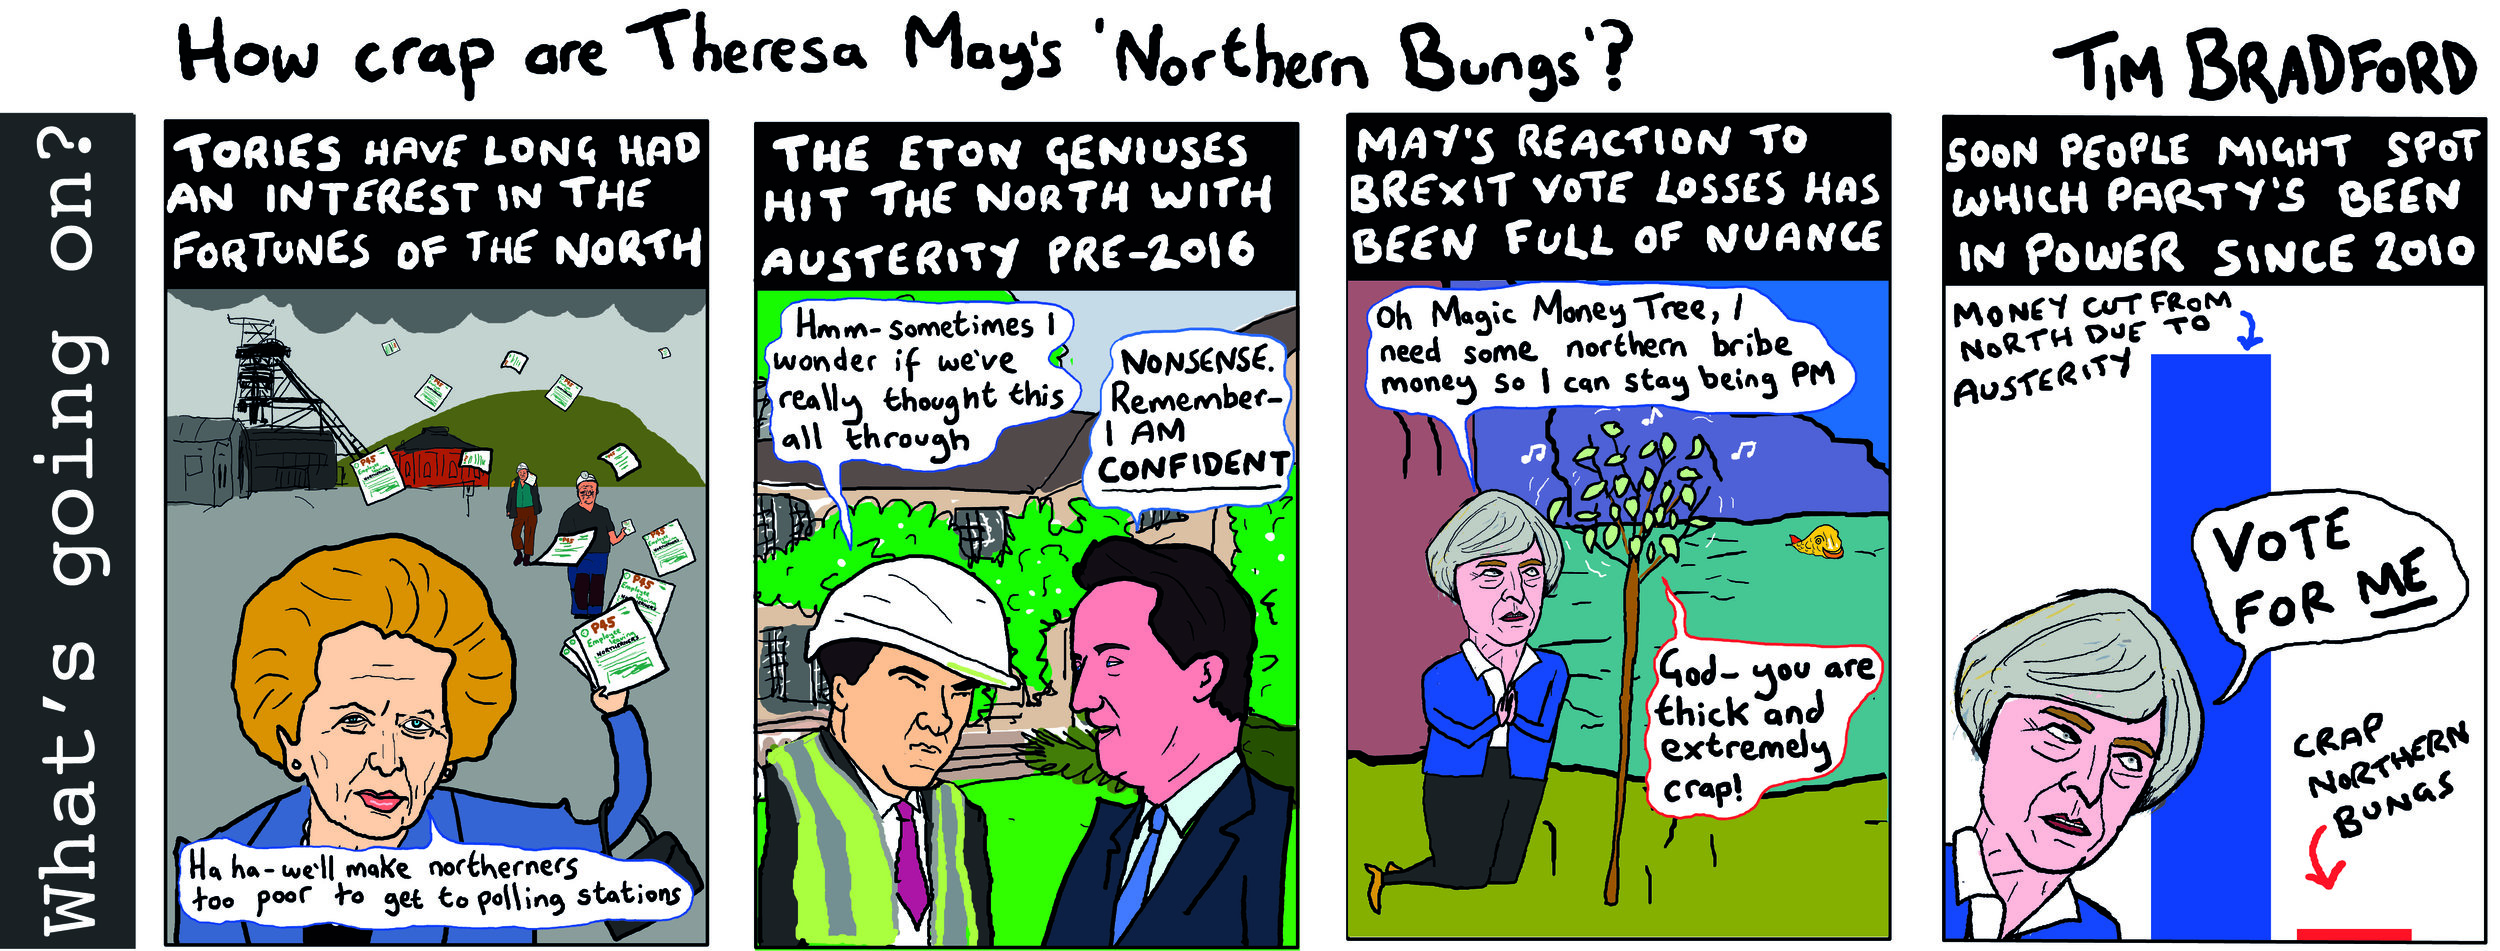 How crap are Theresa May's northern bungs? - 05/03/2019